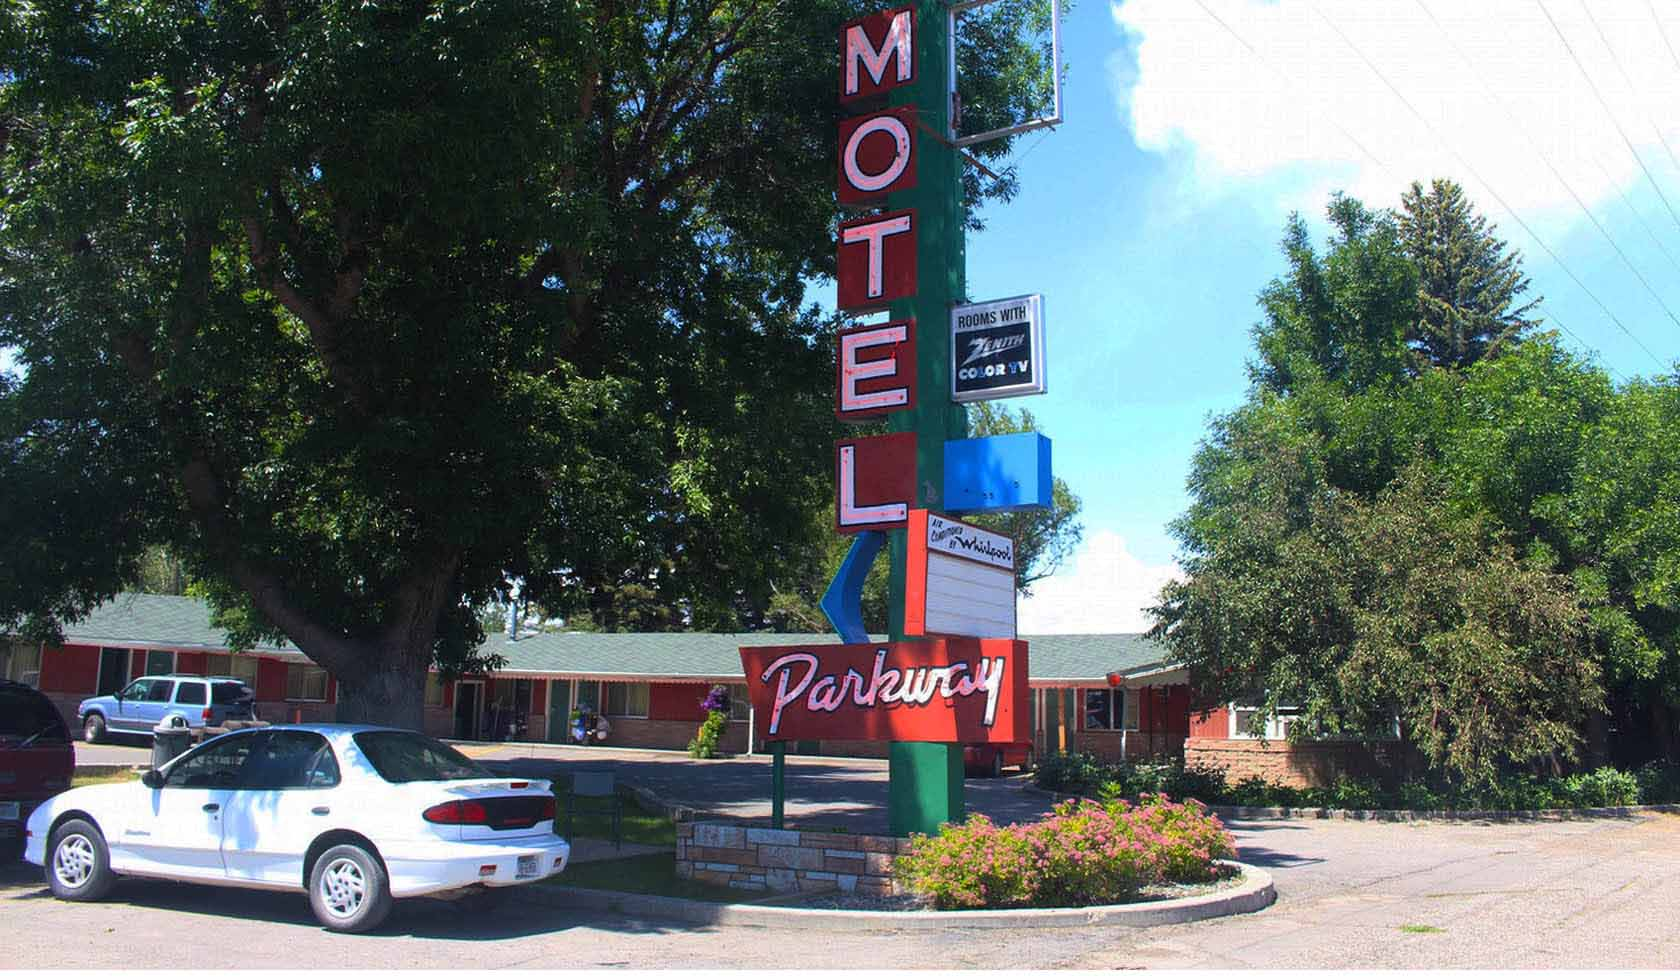 Budget Host Parkway Motel profile image